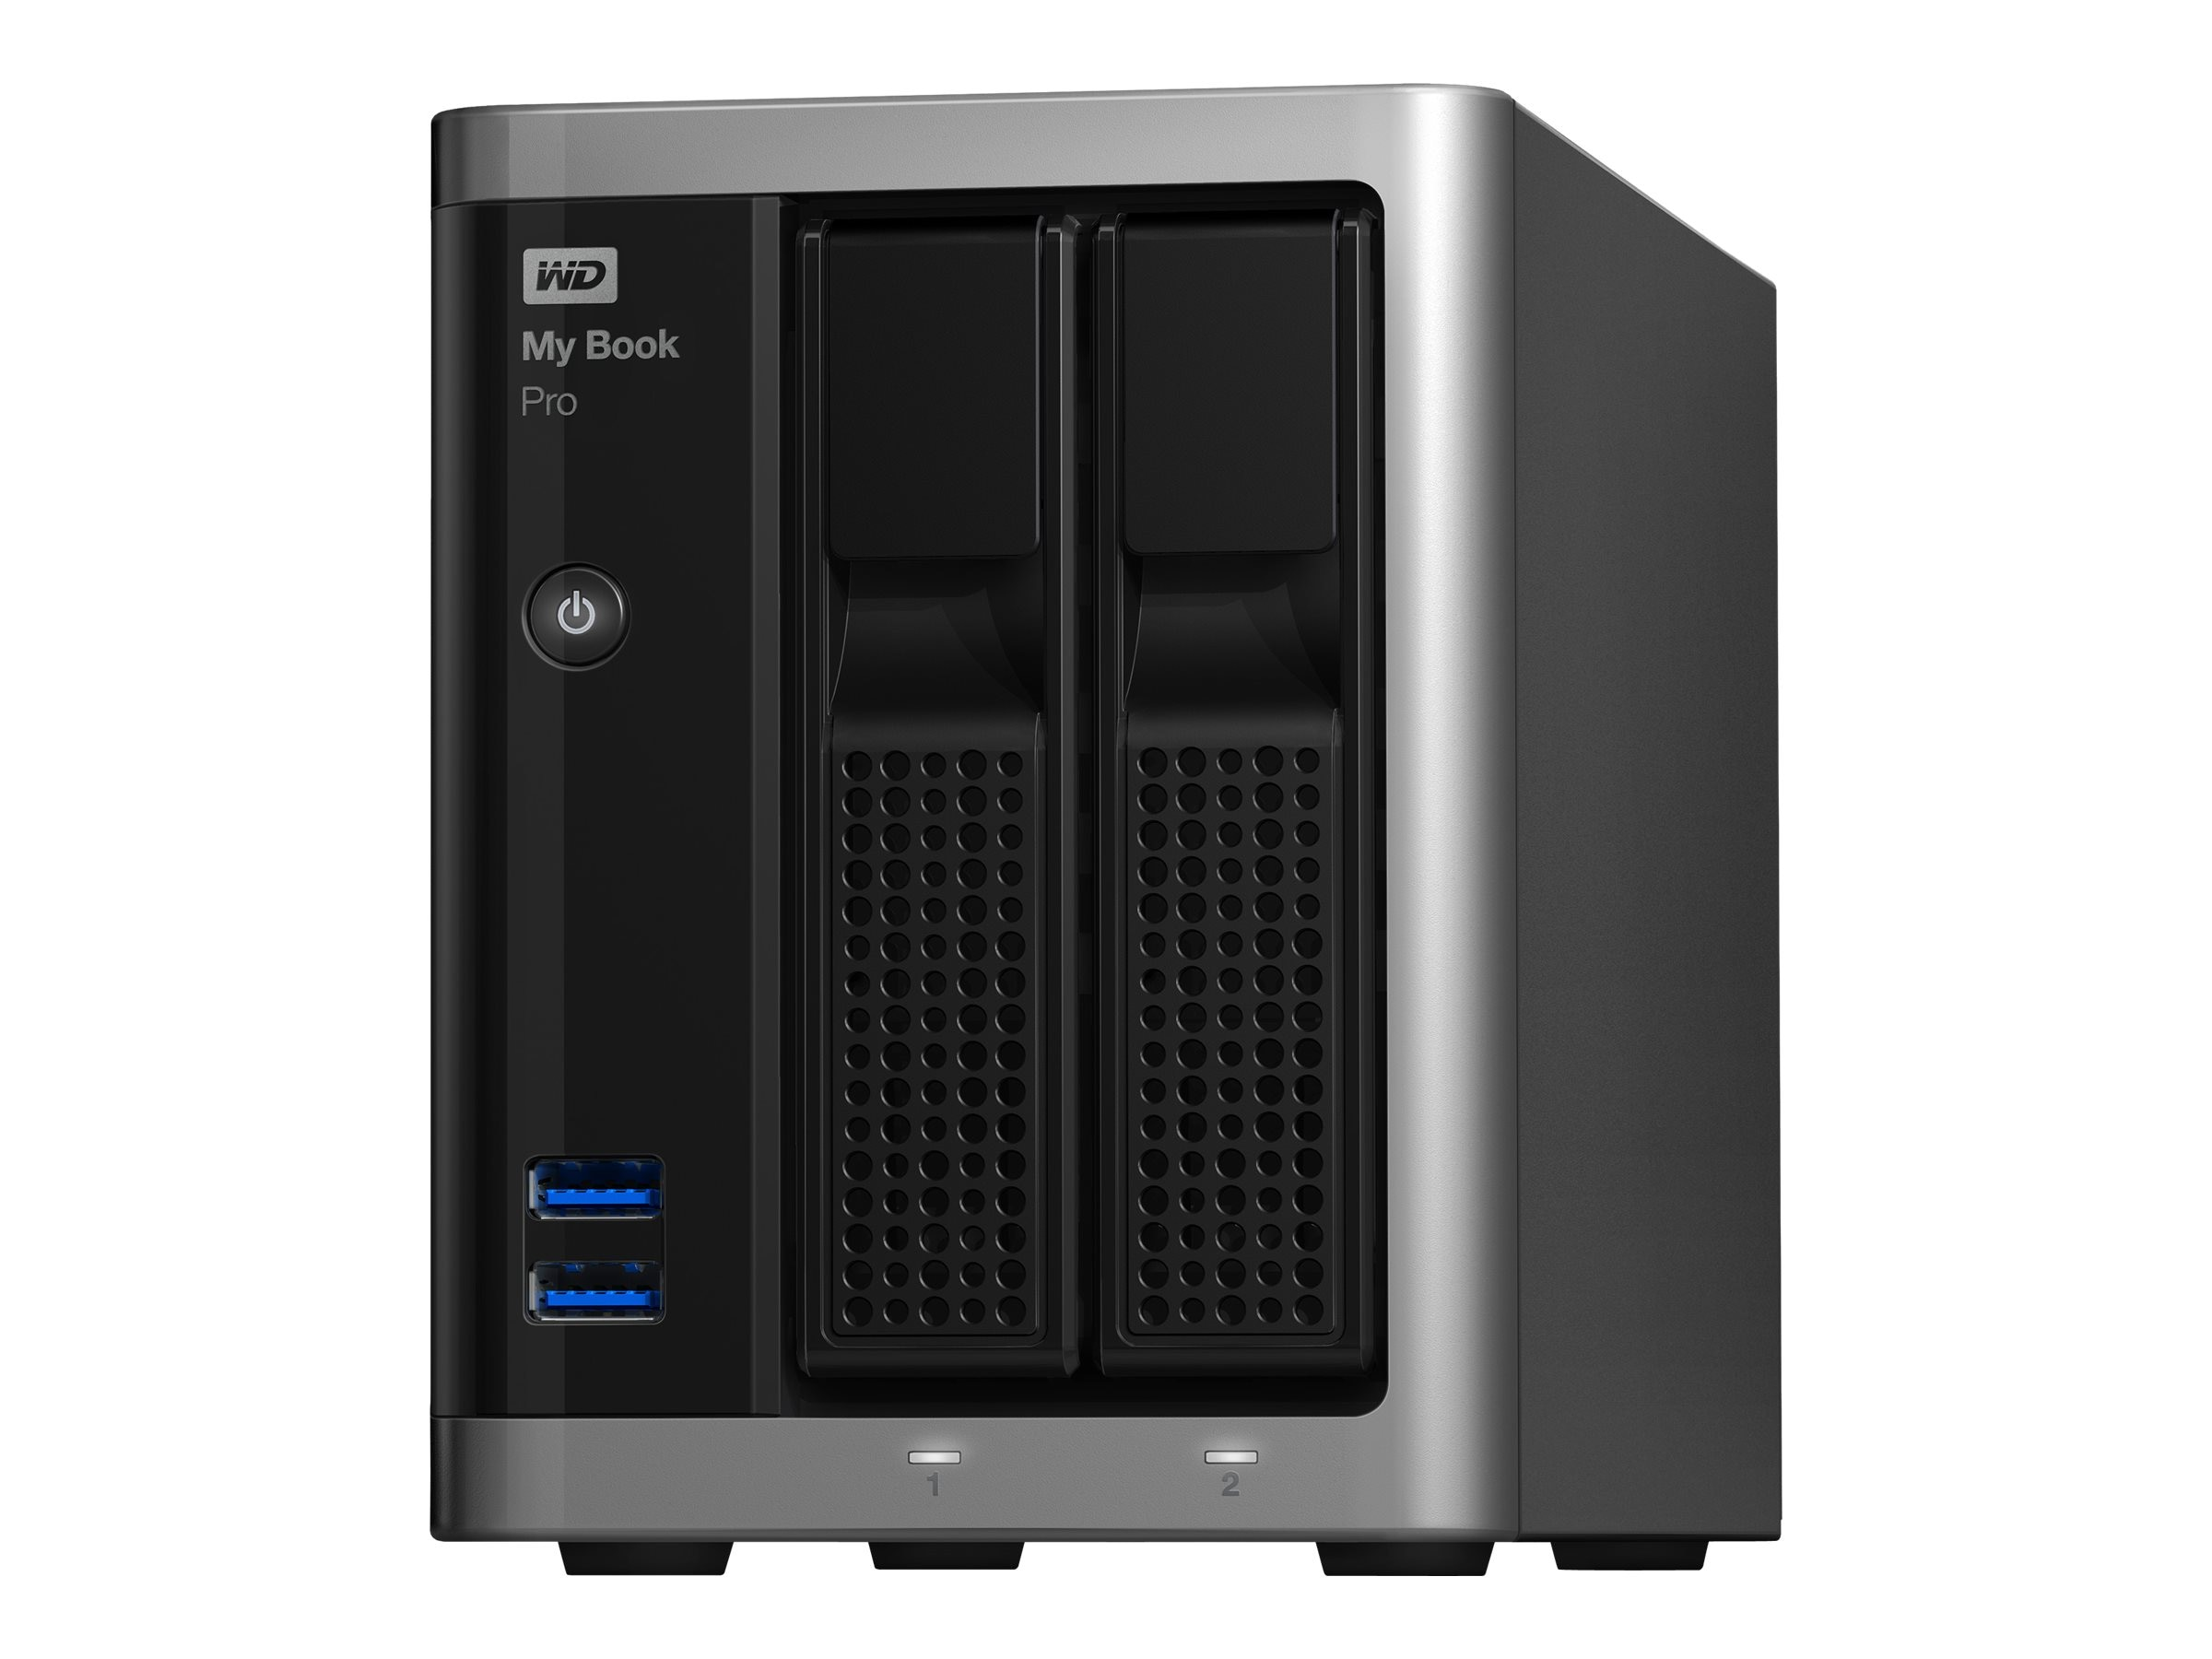 WD 12TB My Book Pro Dual Drive Thunderbolt2 RAID Storage, WDBDTB0120JSL-NESN, 23730129, Hard Drives - External